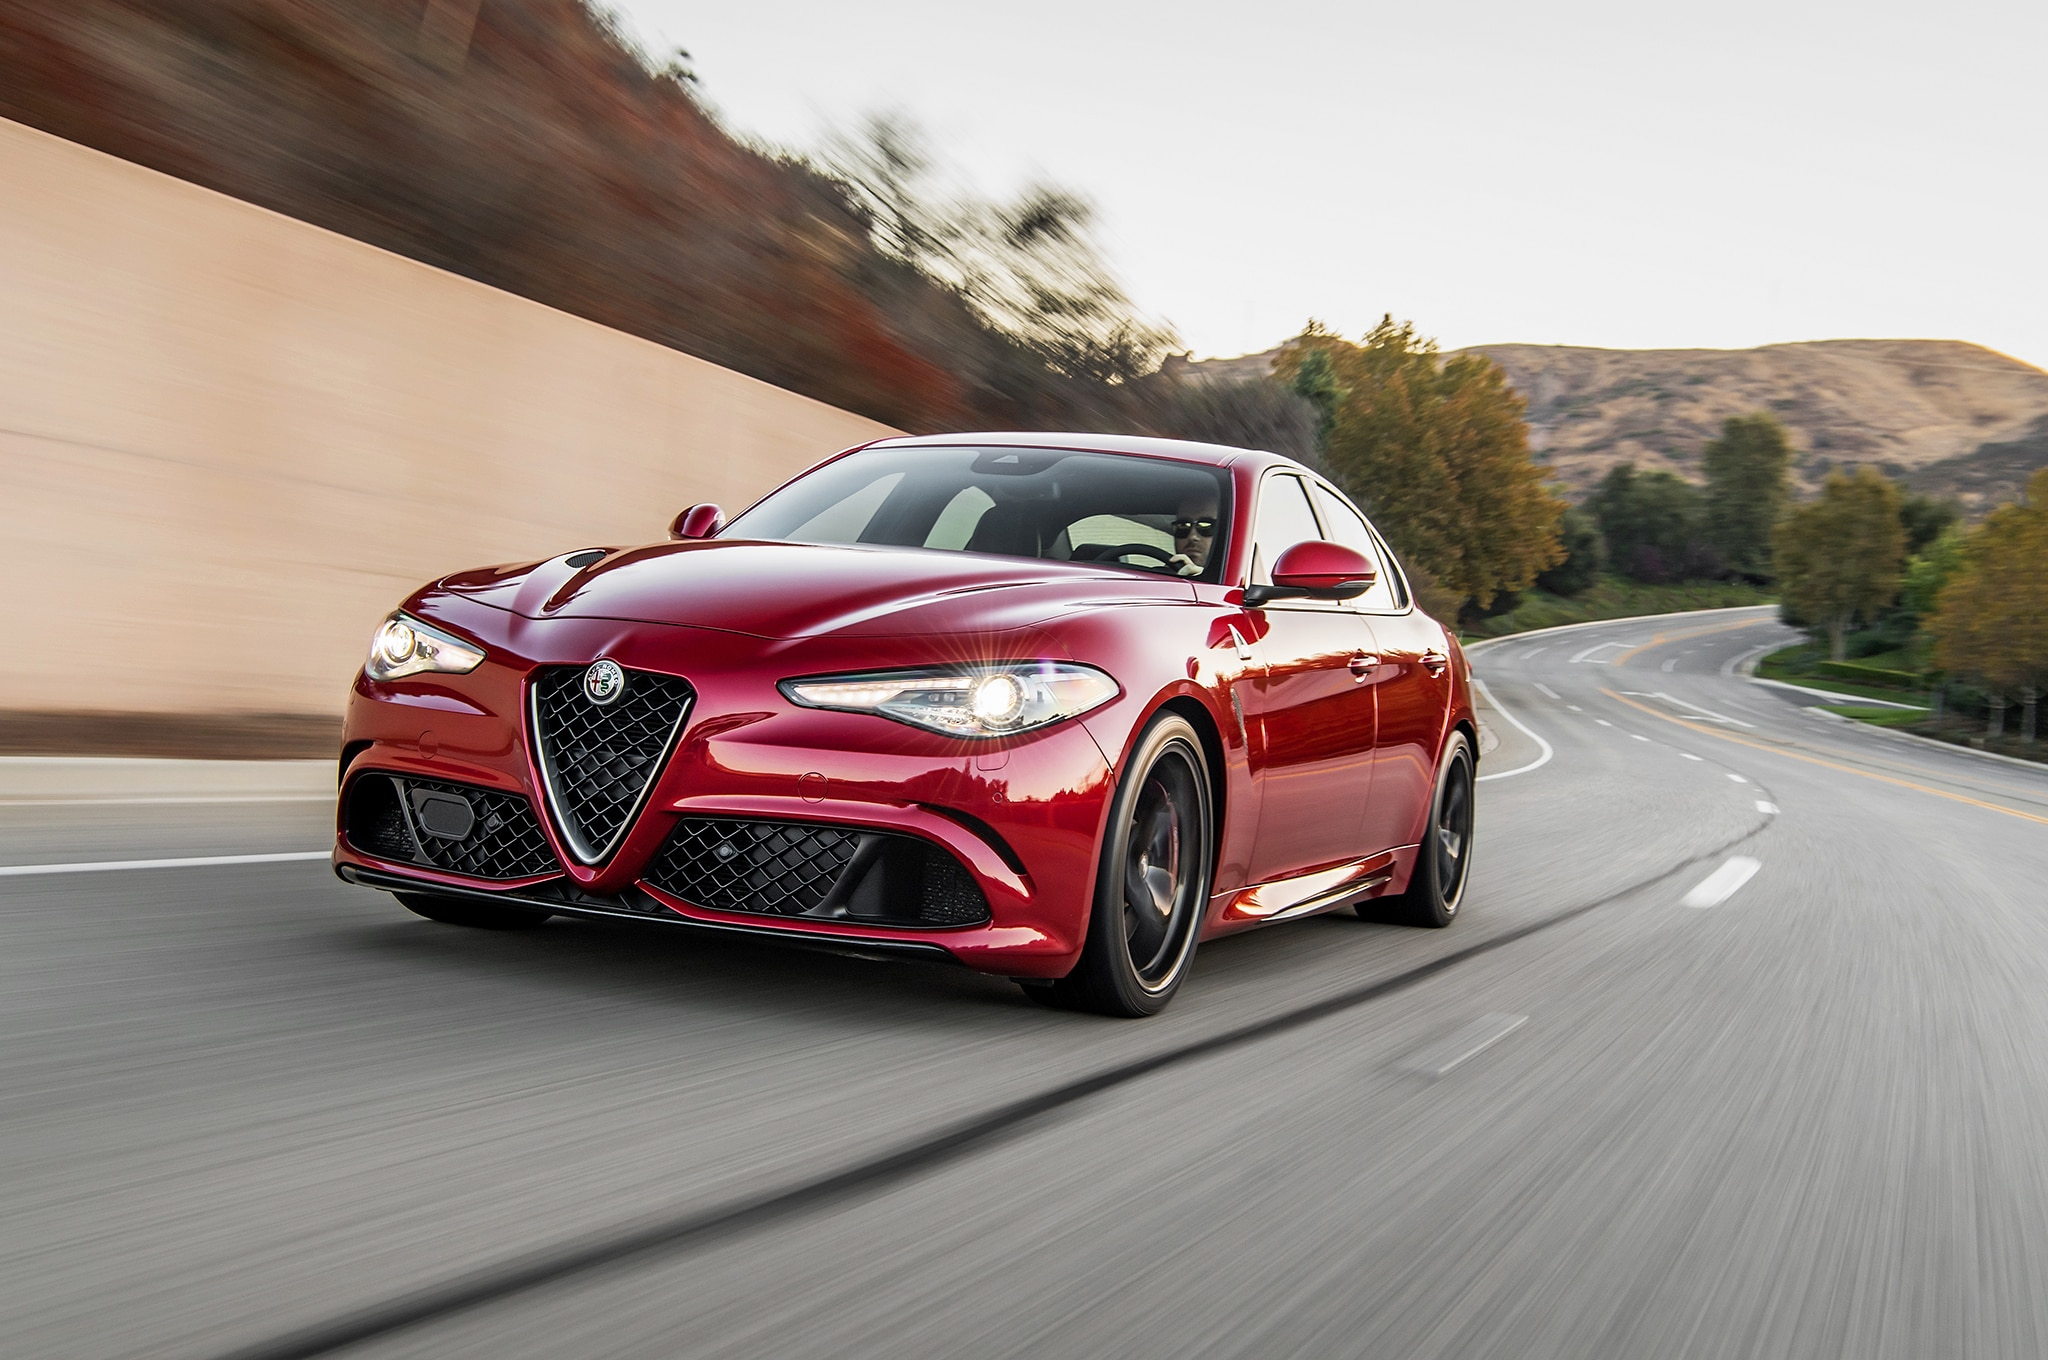 2017 Alfa Romeo Giulia Front Three Quarter In Motion 01